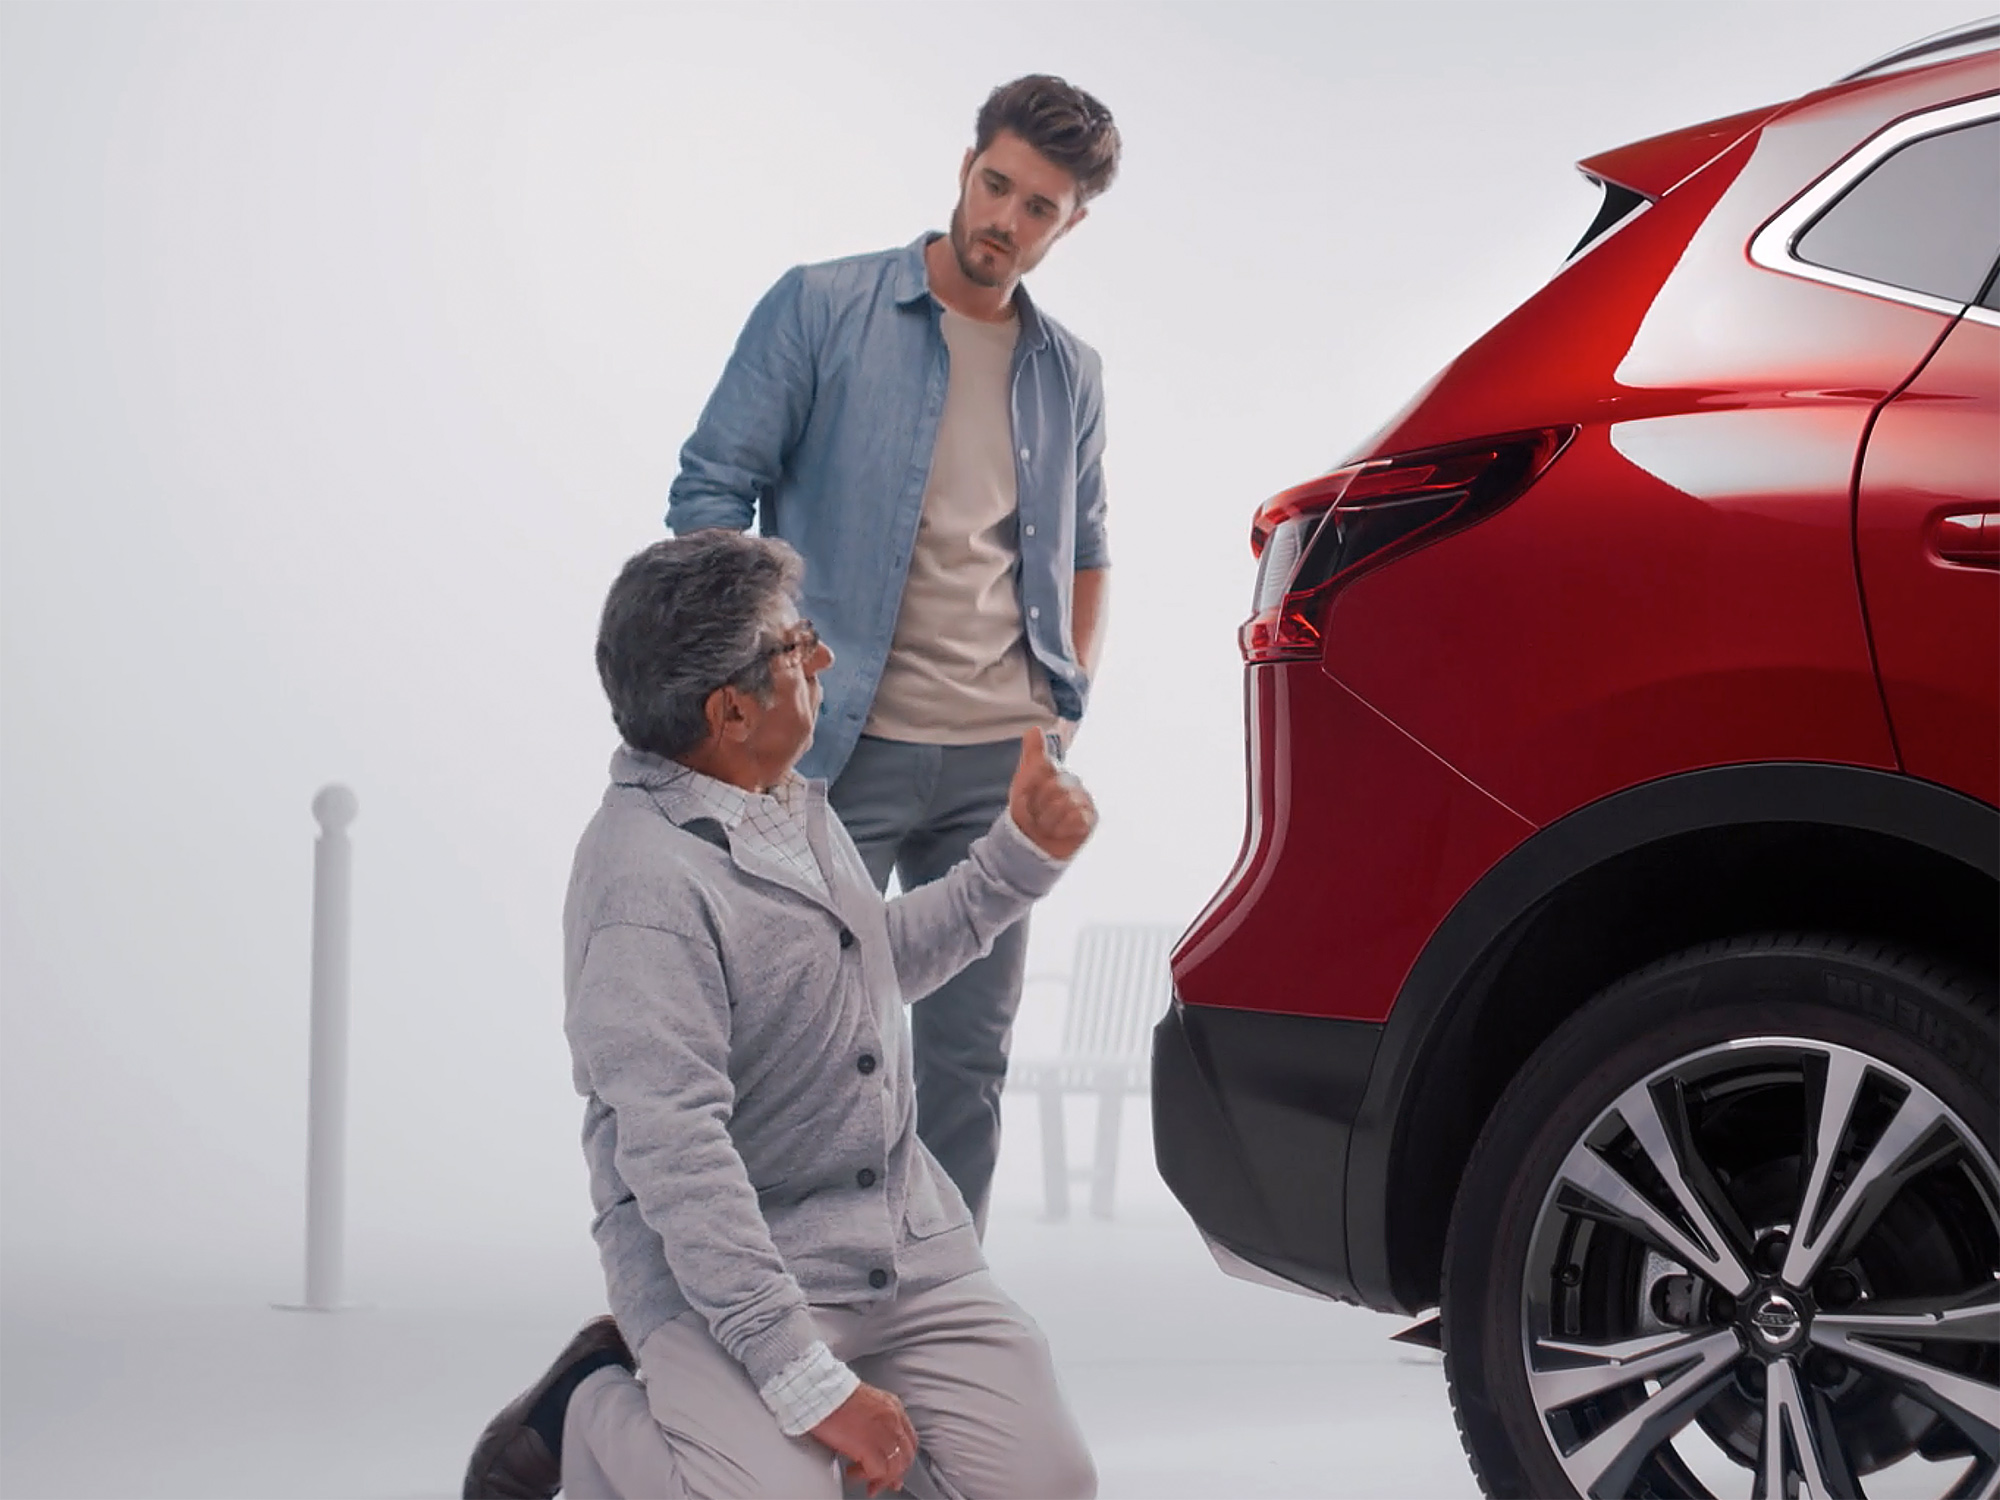 Hijacking used car videos to introduce a better way to buy a used car.